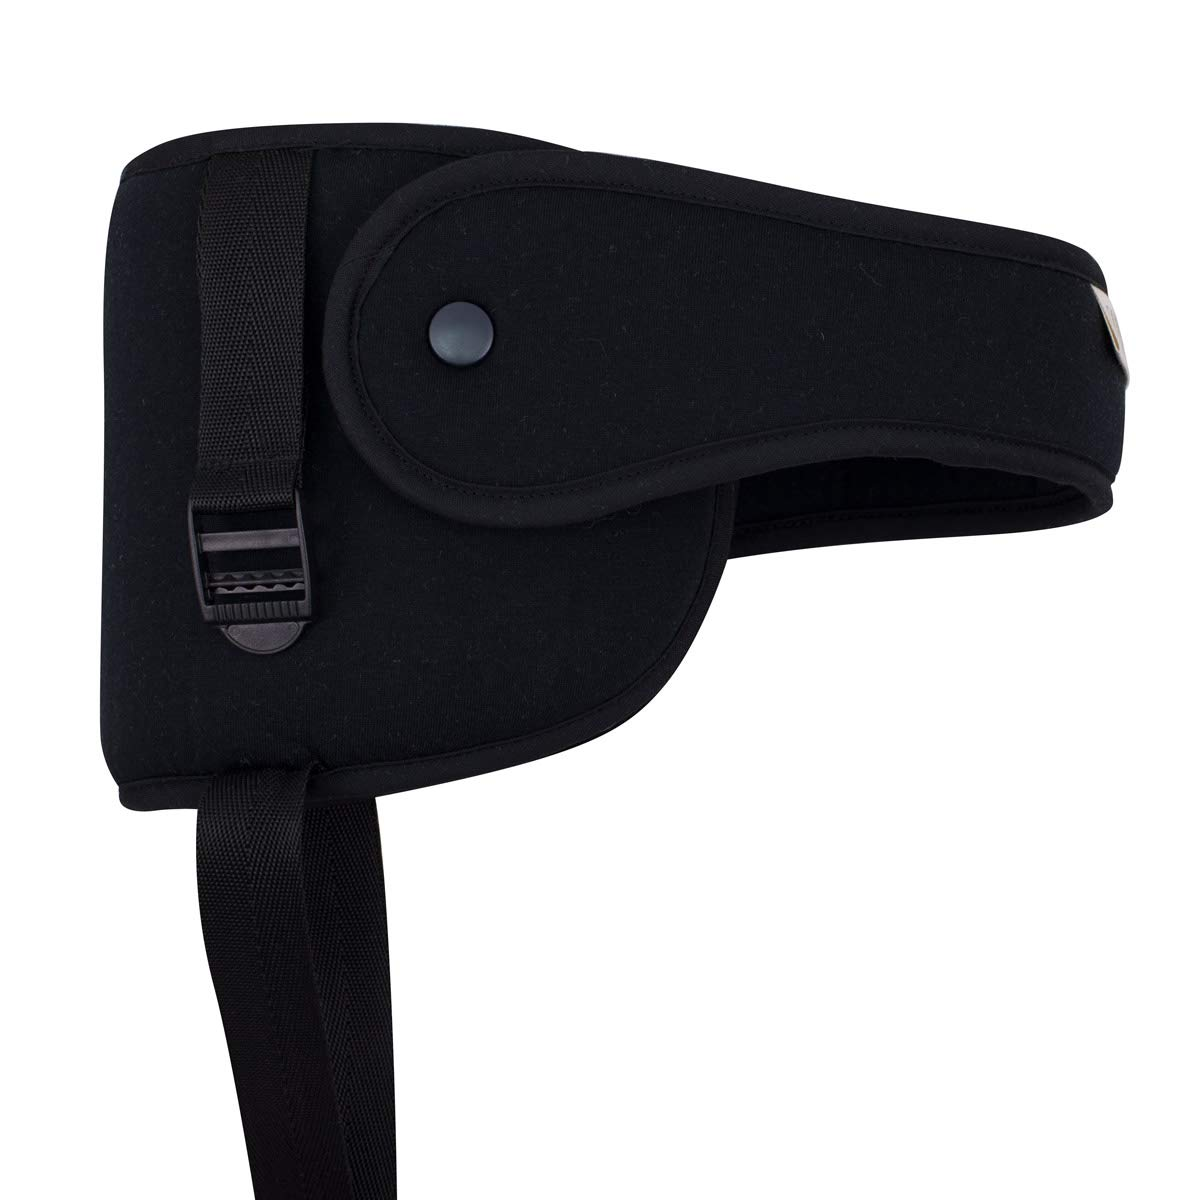 Raccoon Janabeb/é Universal Head Support for car Seats and Strollers